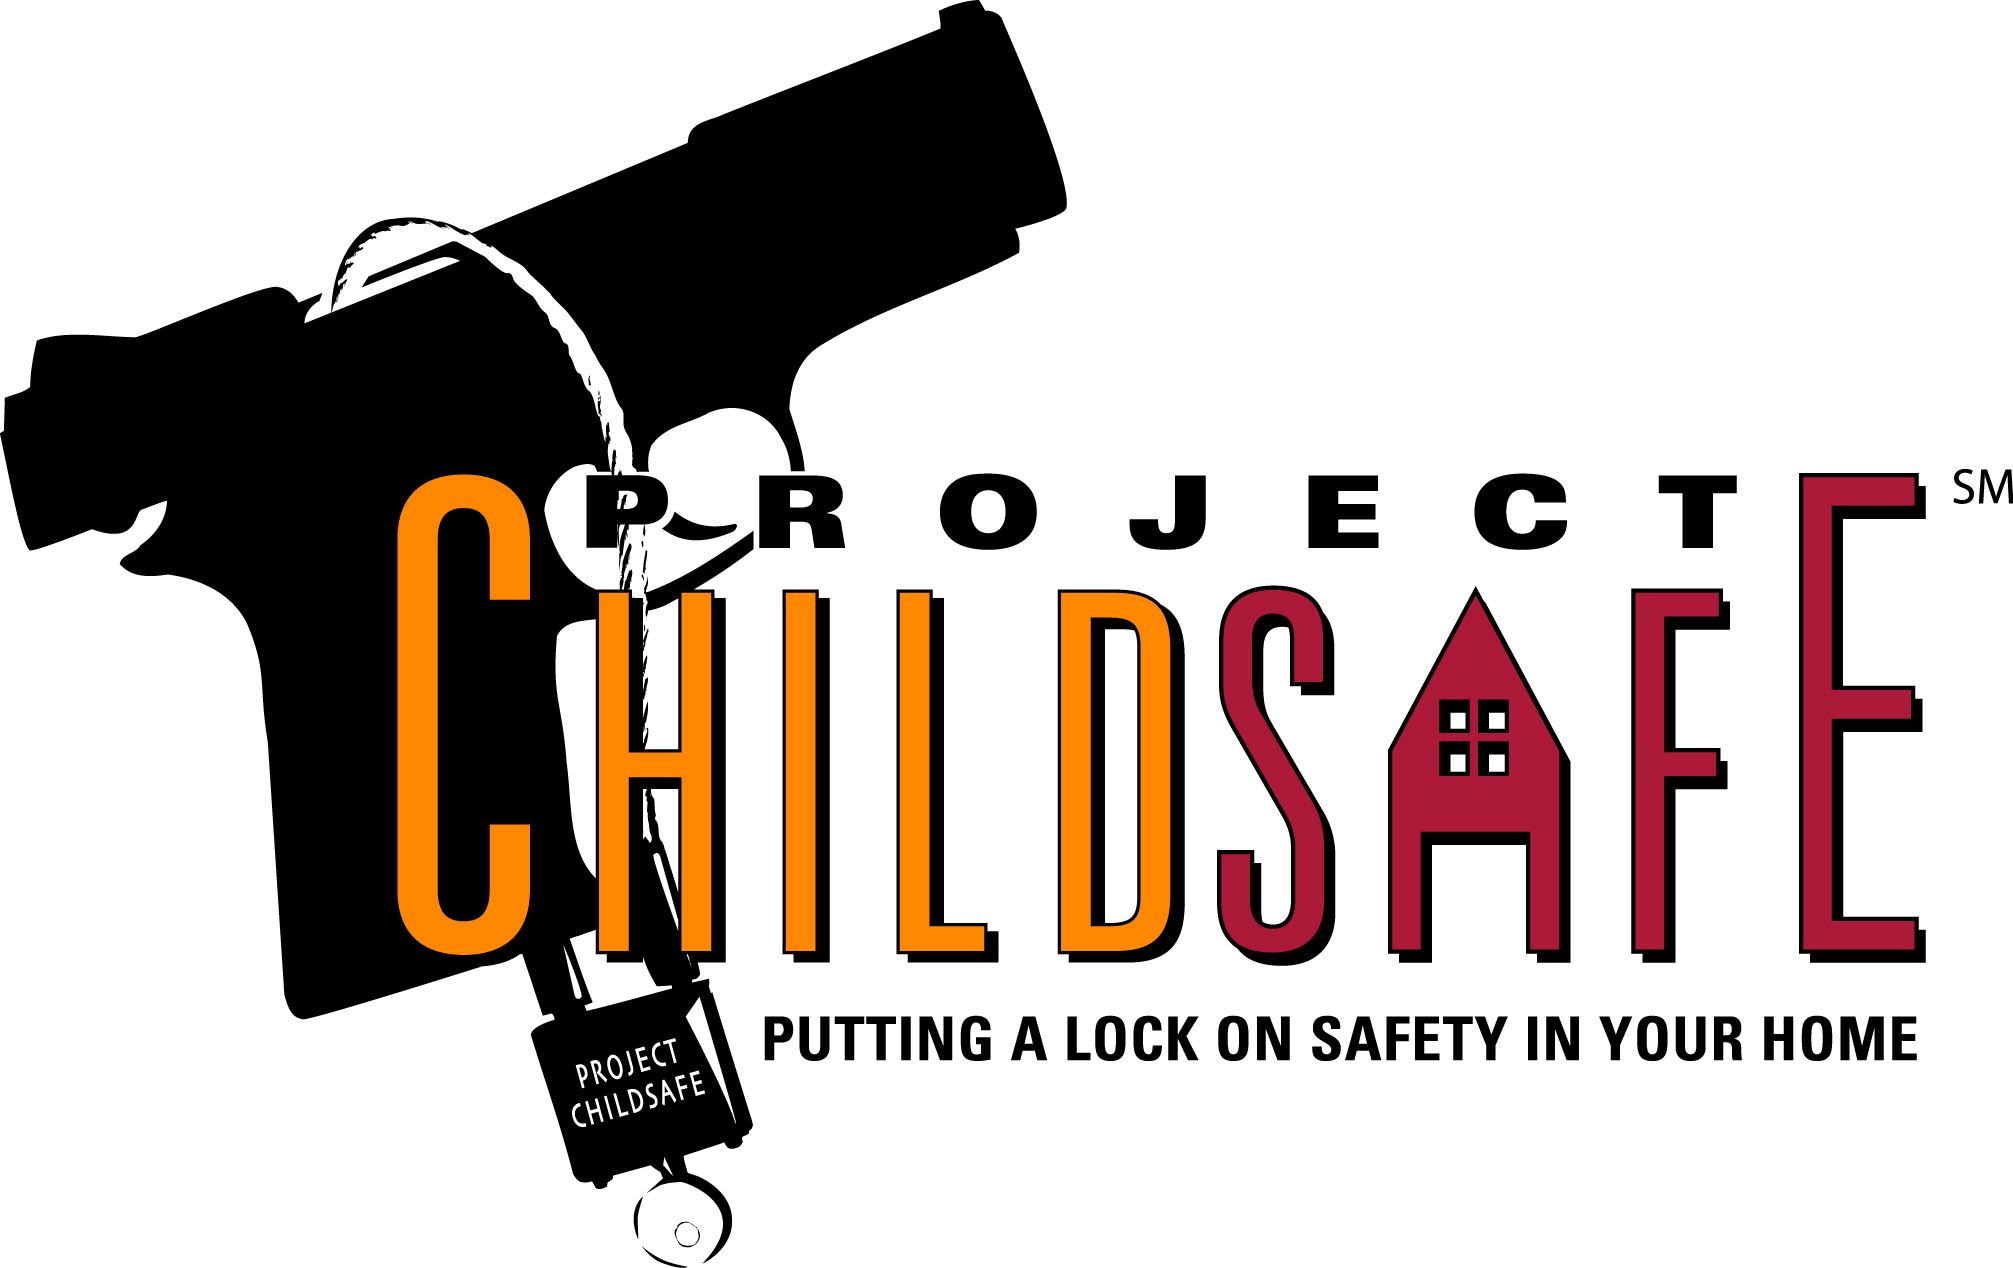 project childsafe